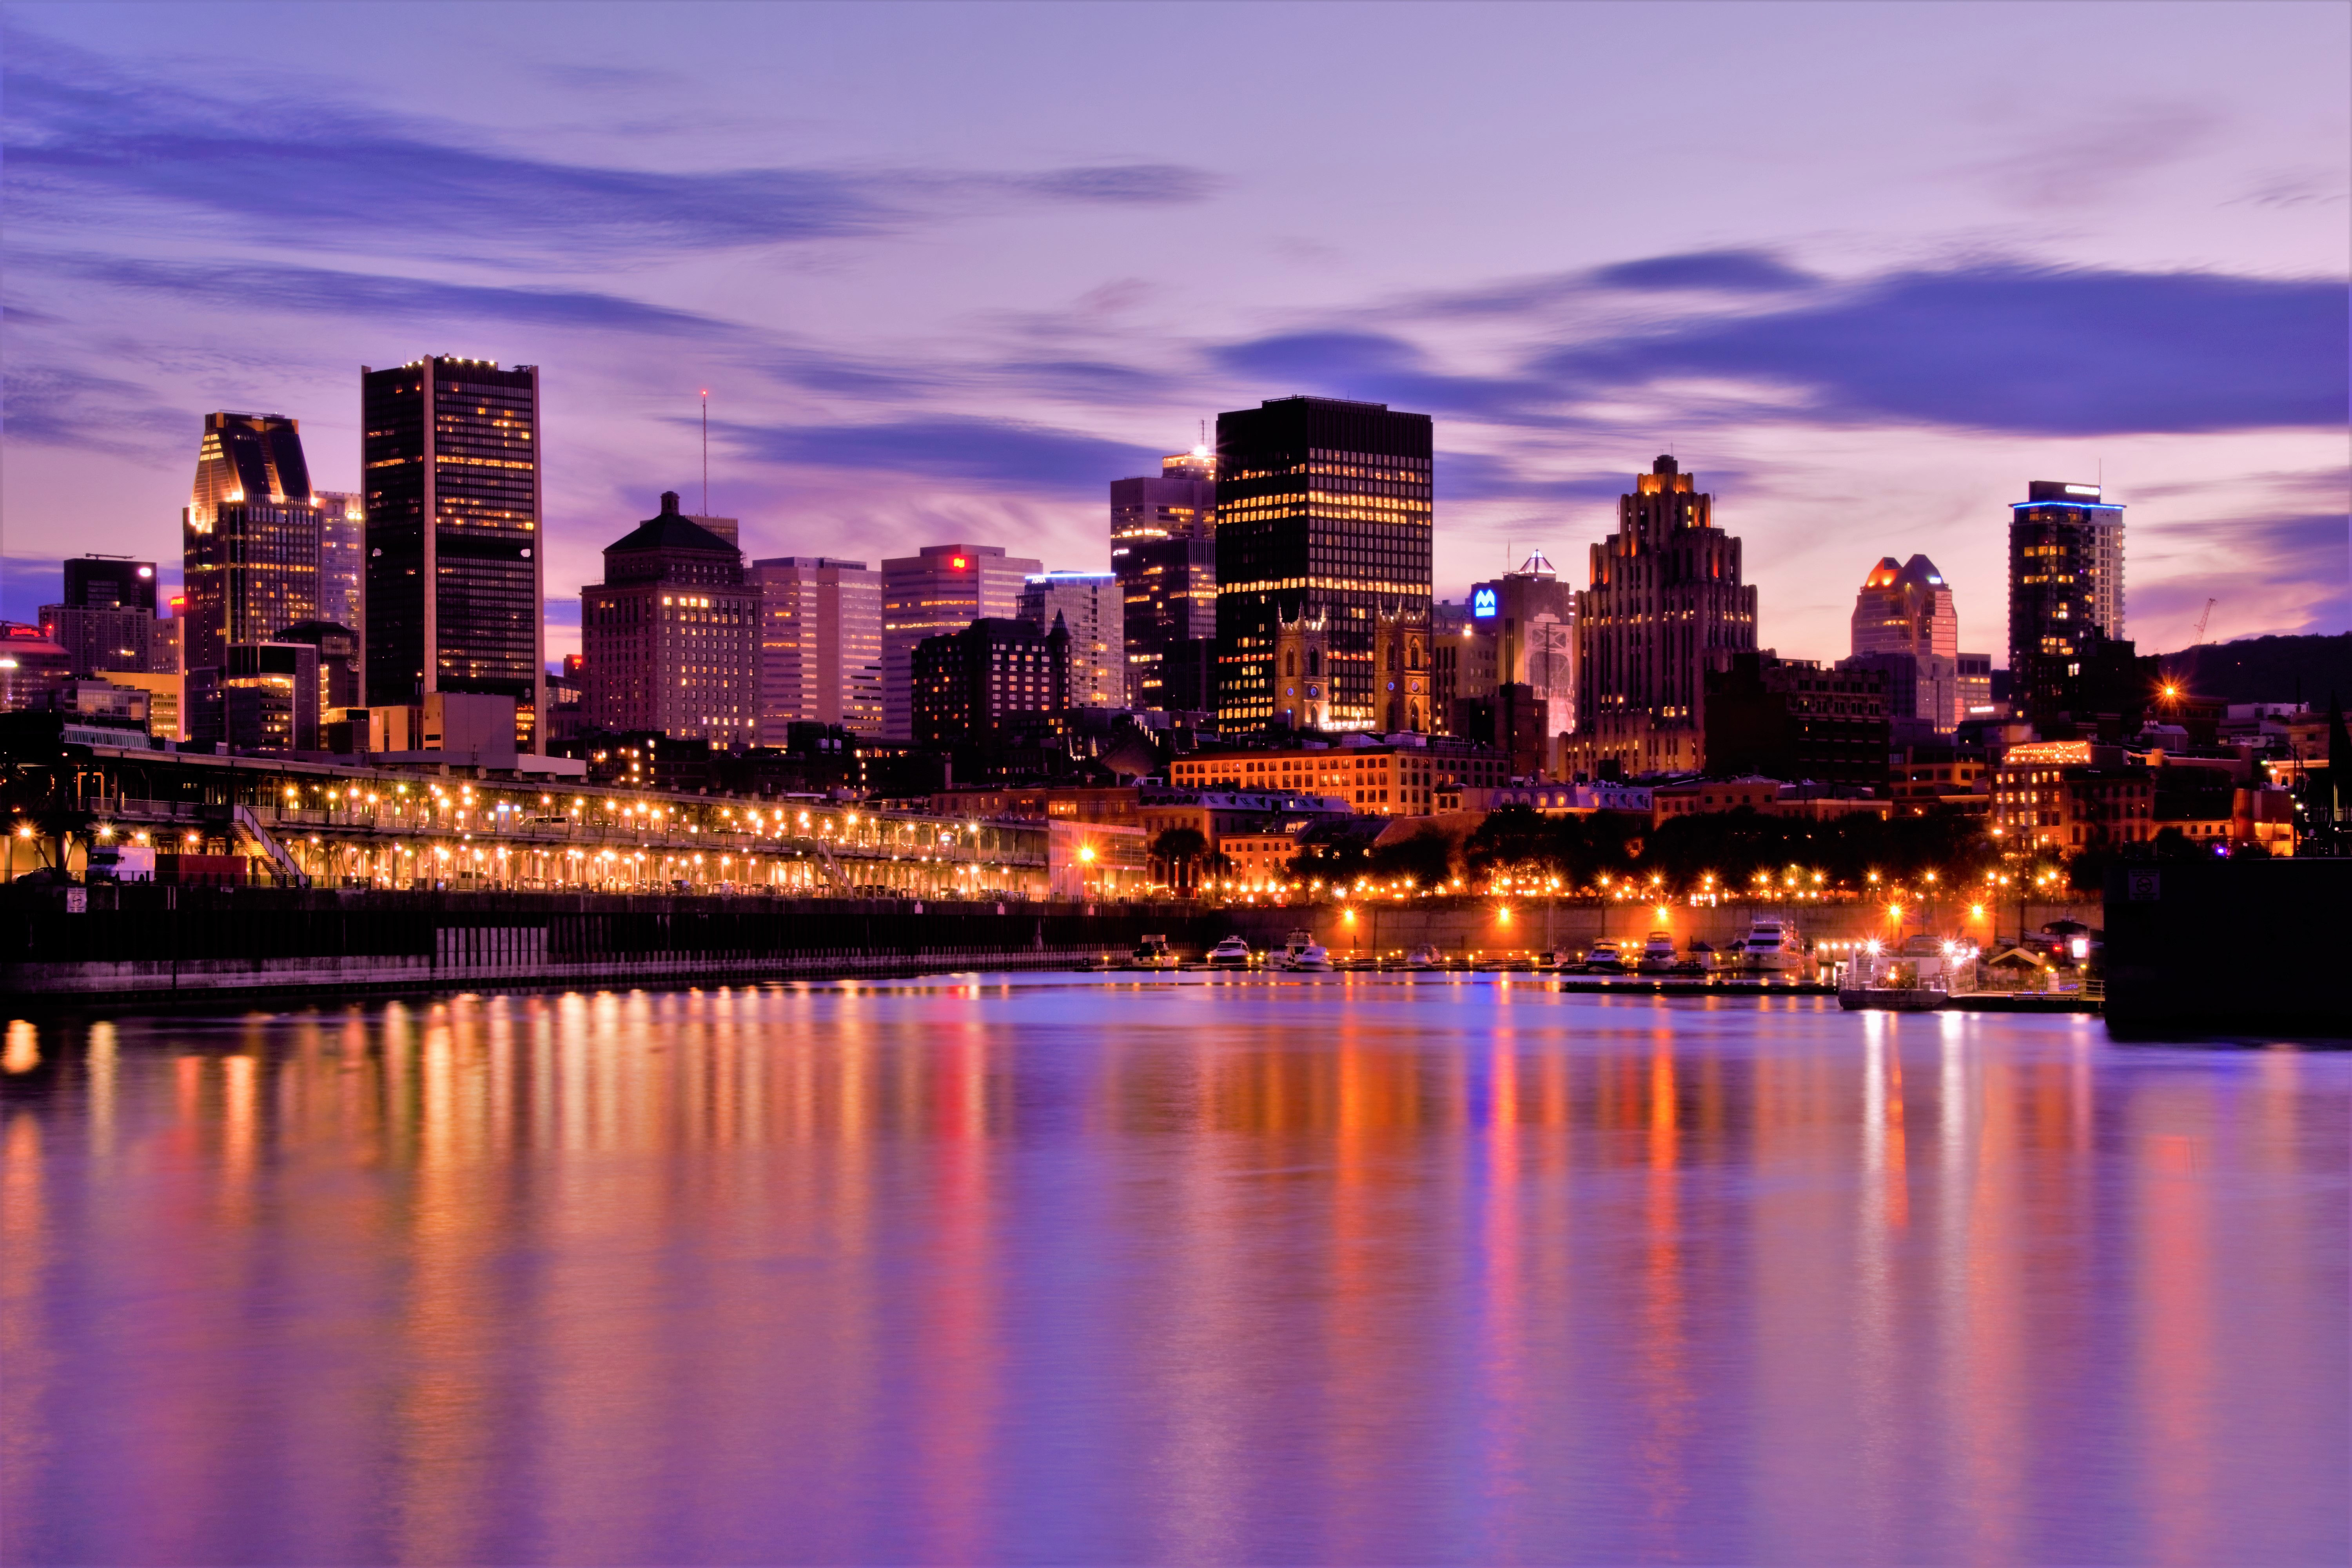 Montreal, Quebec, Canada - Most Beautiful Picture of the